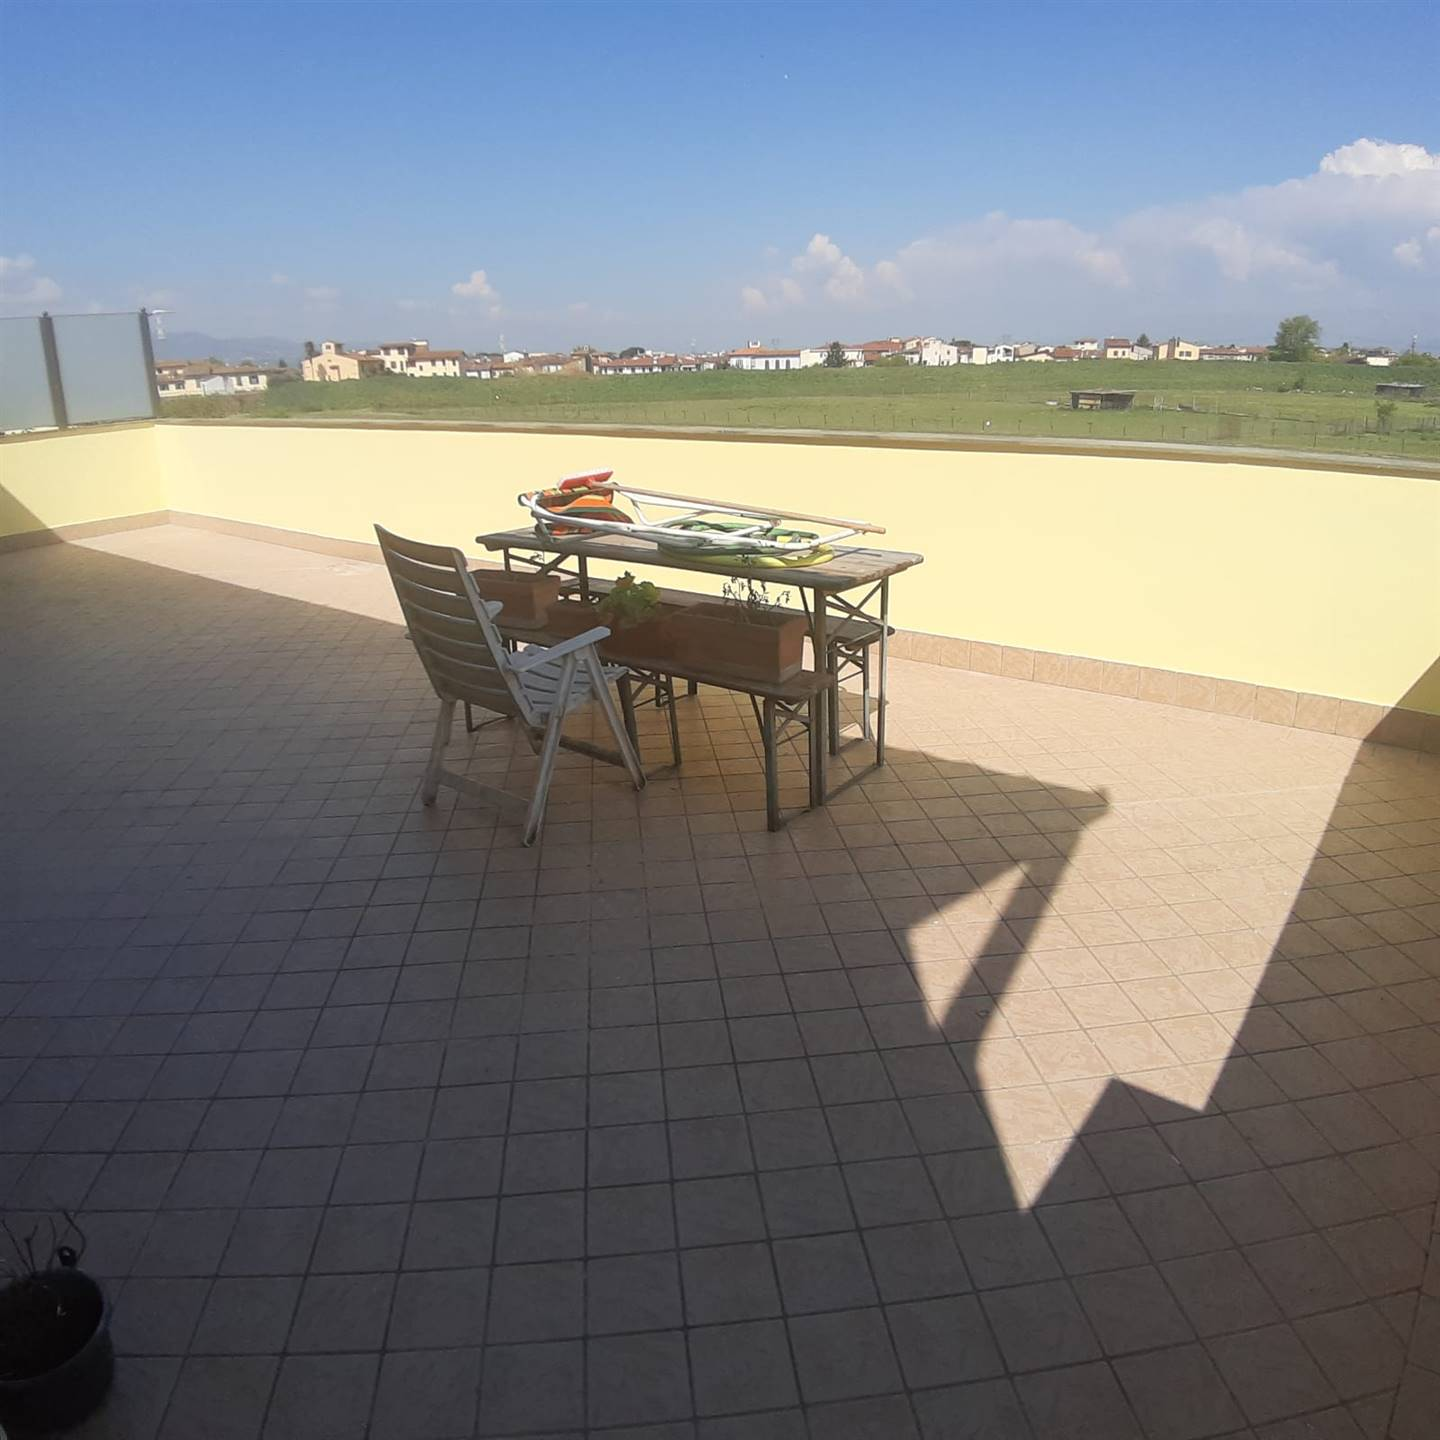 SAN DONNINO, CAMPI BISENZIO, Apartment for rent, Habitable, Heating Individual heating system, Energetic class: G, placed at 1° on 1, composed by: 2